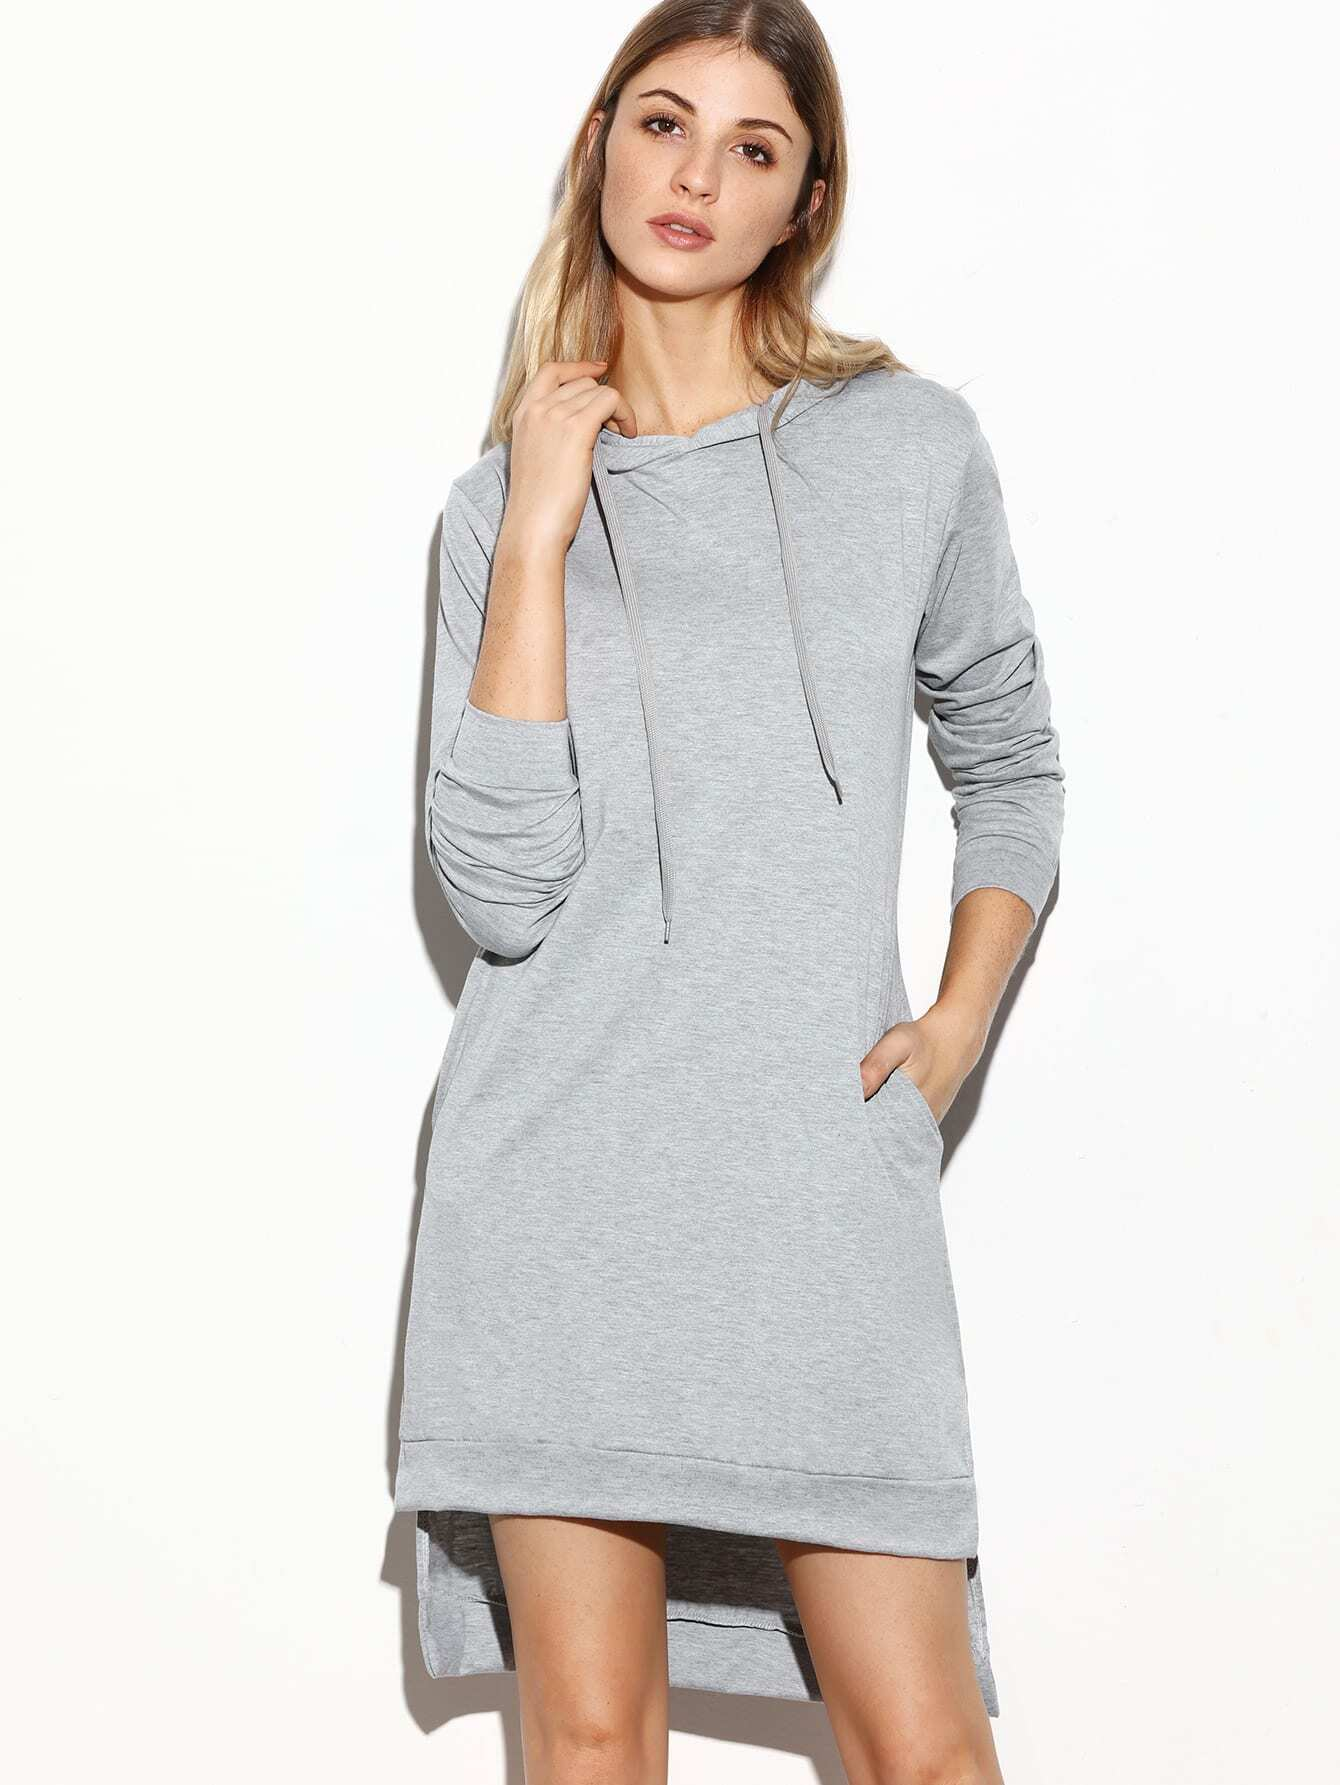 robe sweat shirt avec capuche gris french shein sheinside. Black Bedroom Furniture Sets. Home Design Ideas